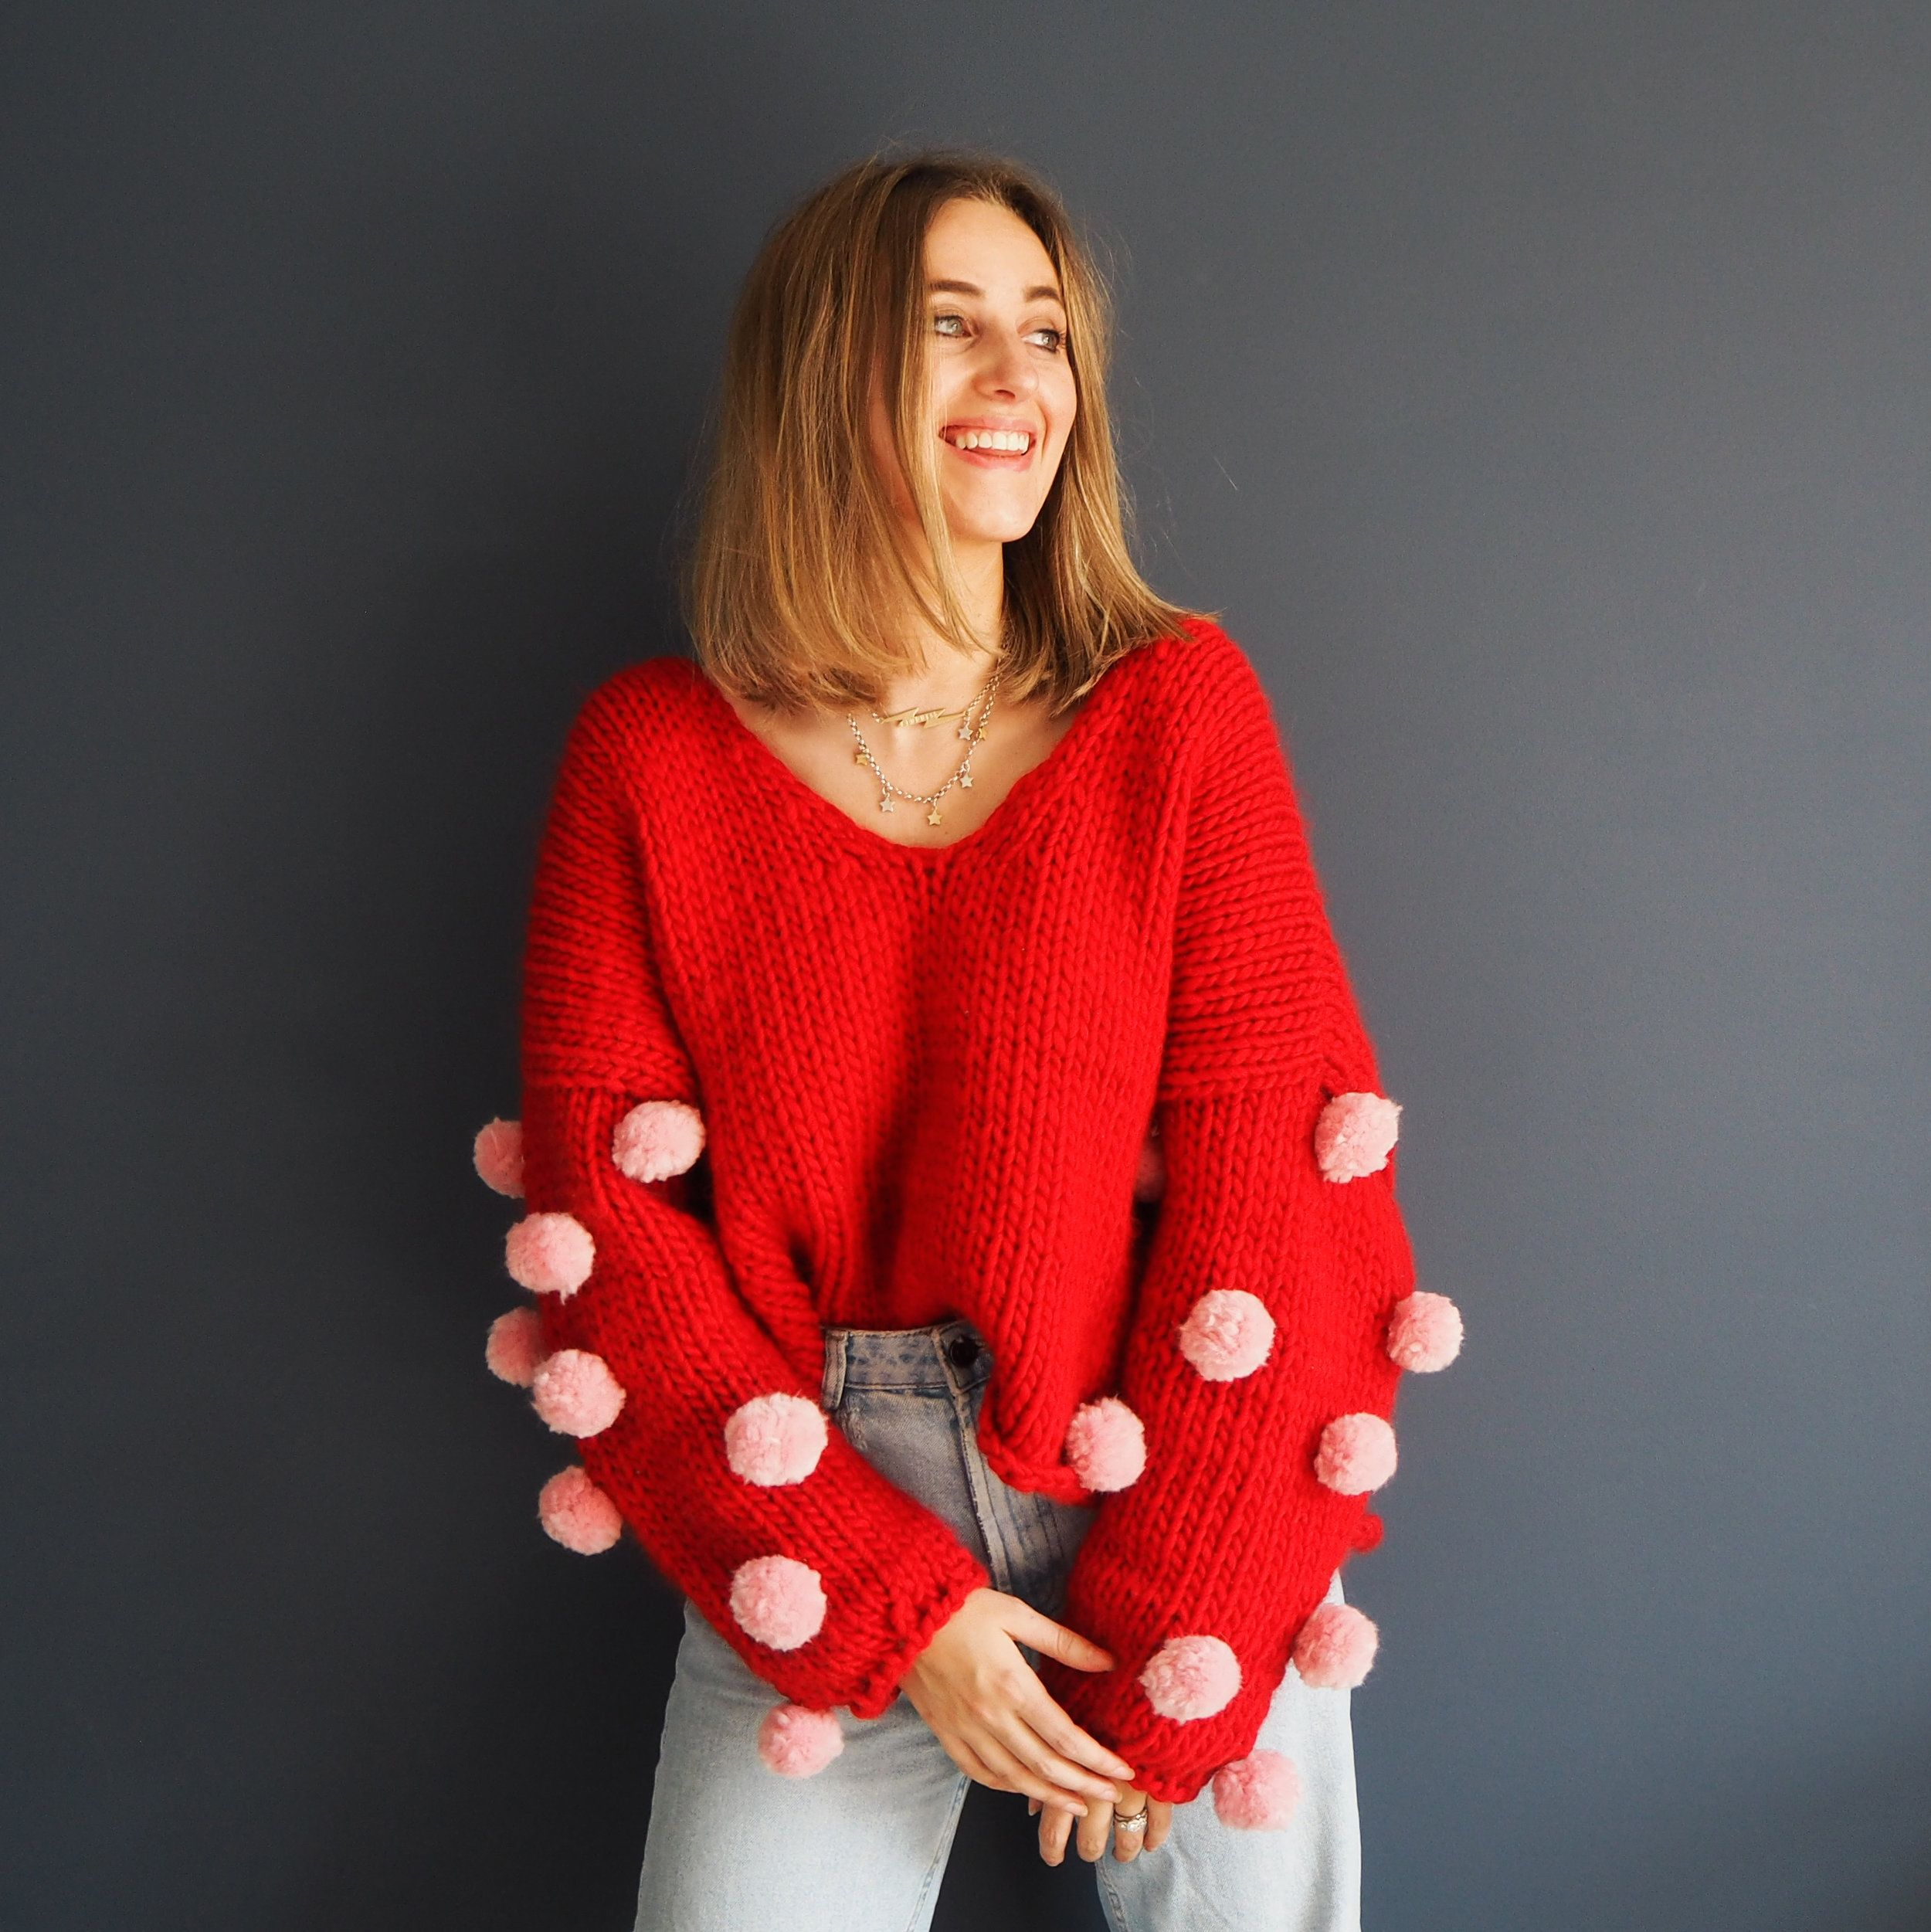 Knit Kits - Lauren Aston Designs